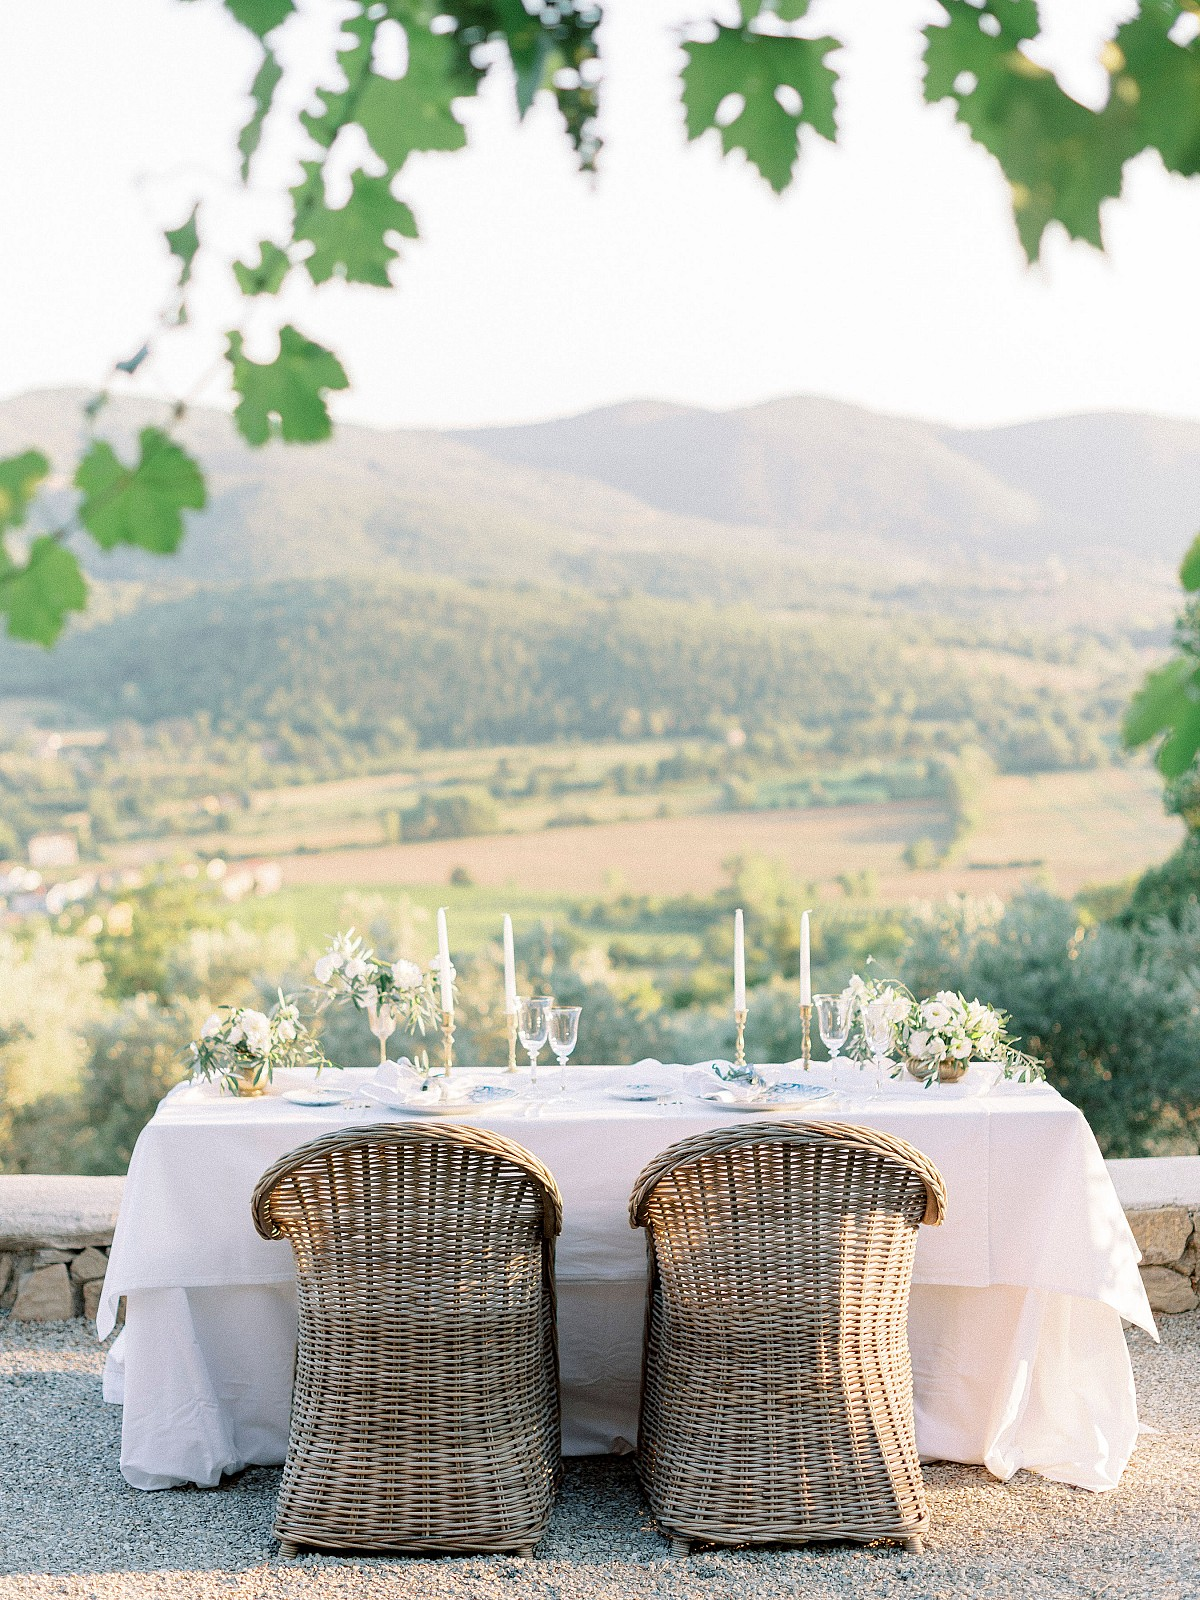 The Perfect Honeymoon in Tuscany